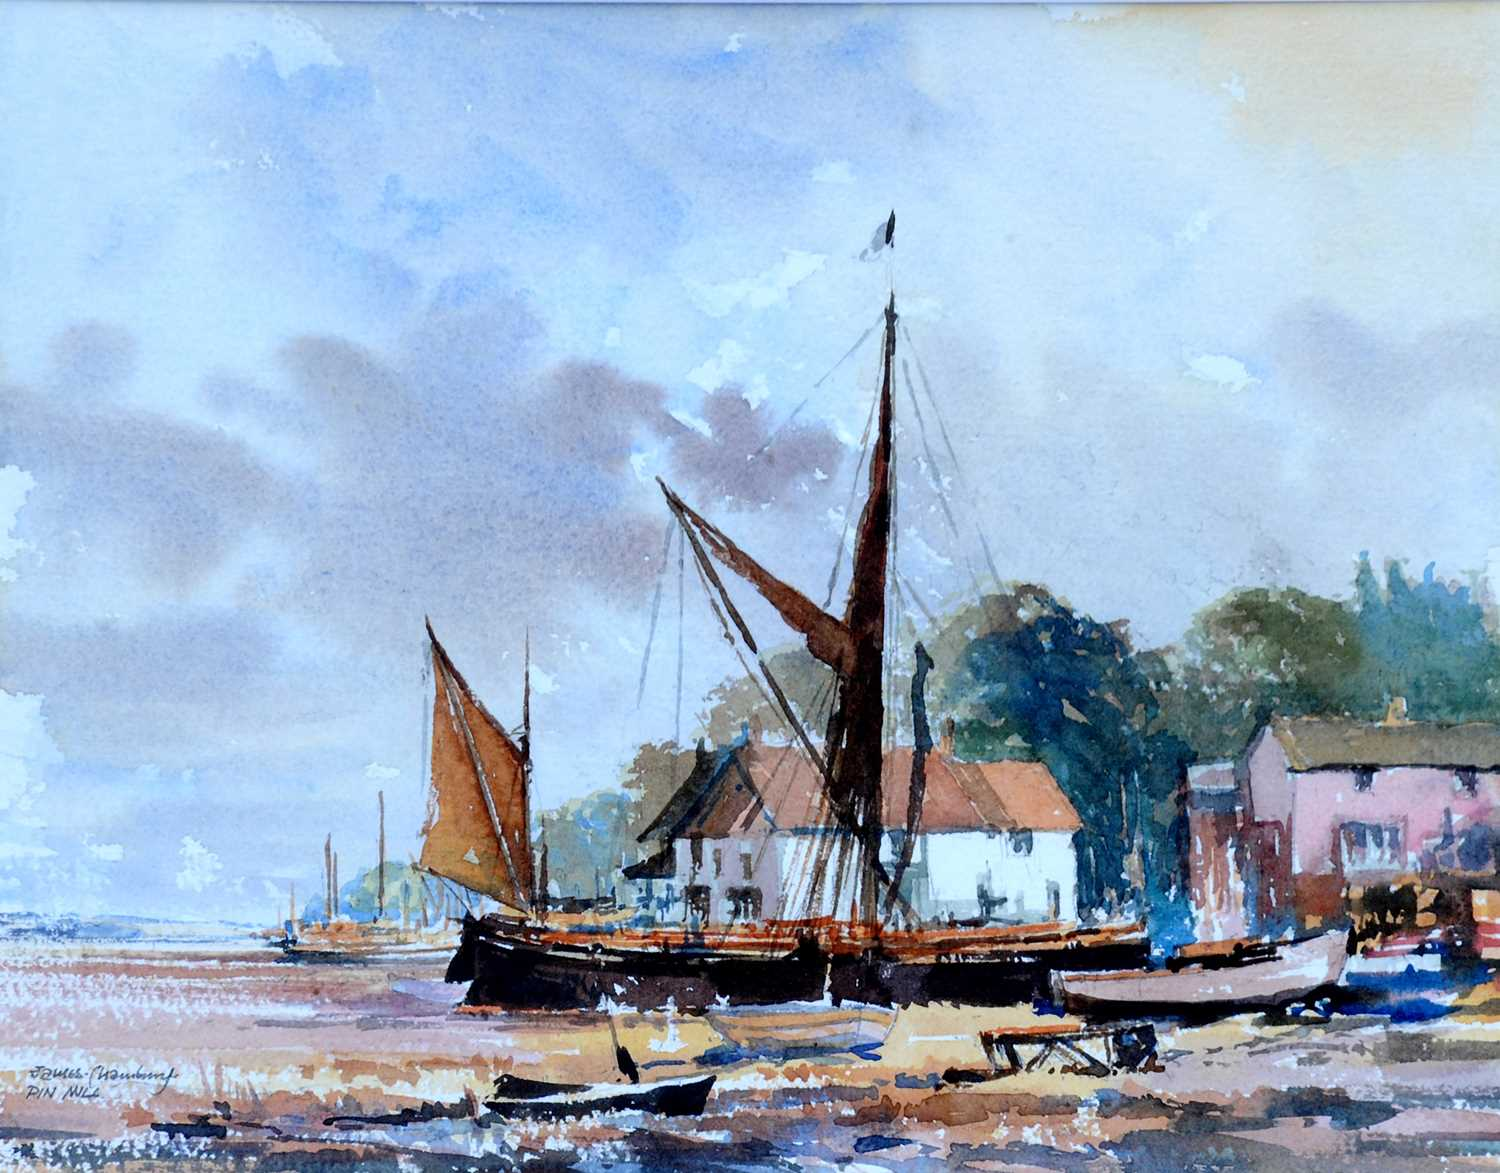 Pin Mill -Watercolour by James Chambury Original watercolour, accompanied by a hardback book James